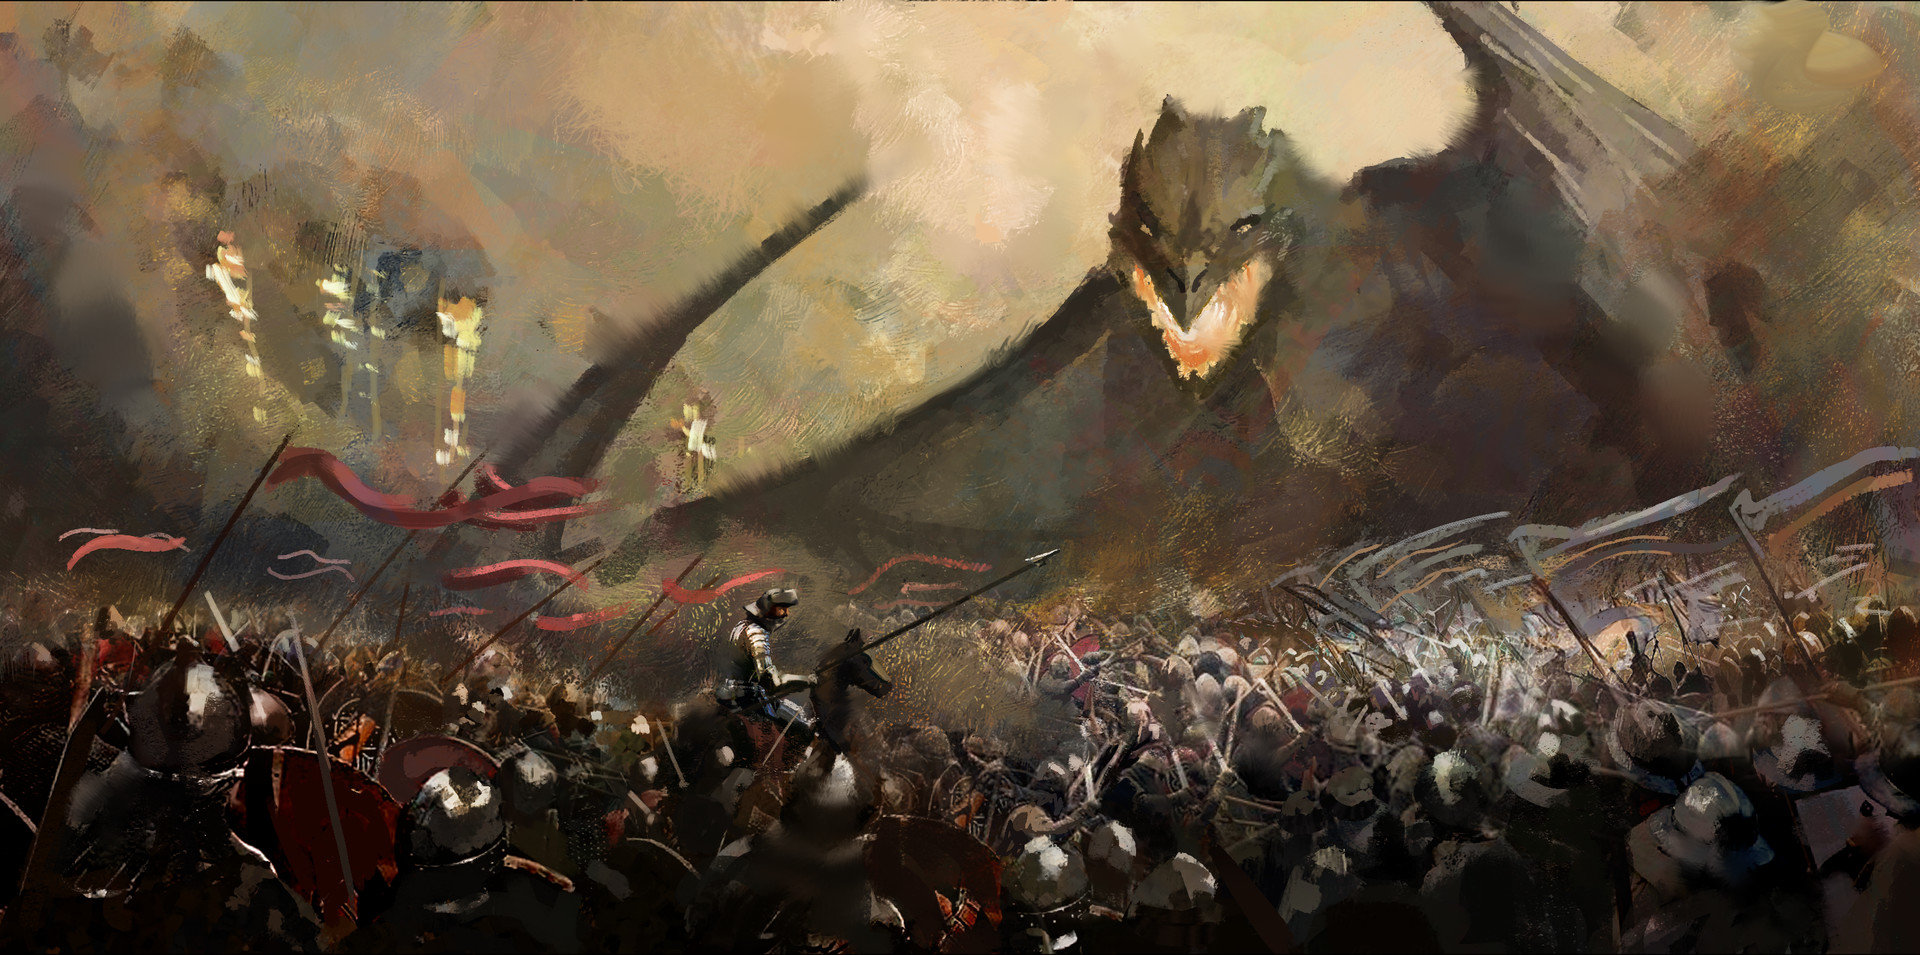 Jack dowell dragon battle field01